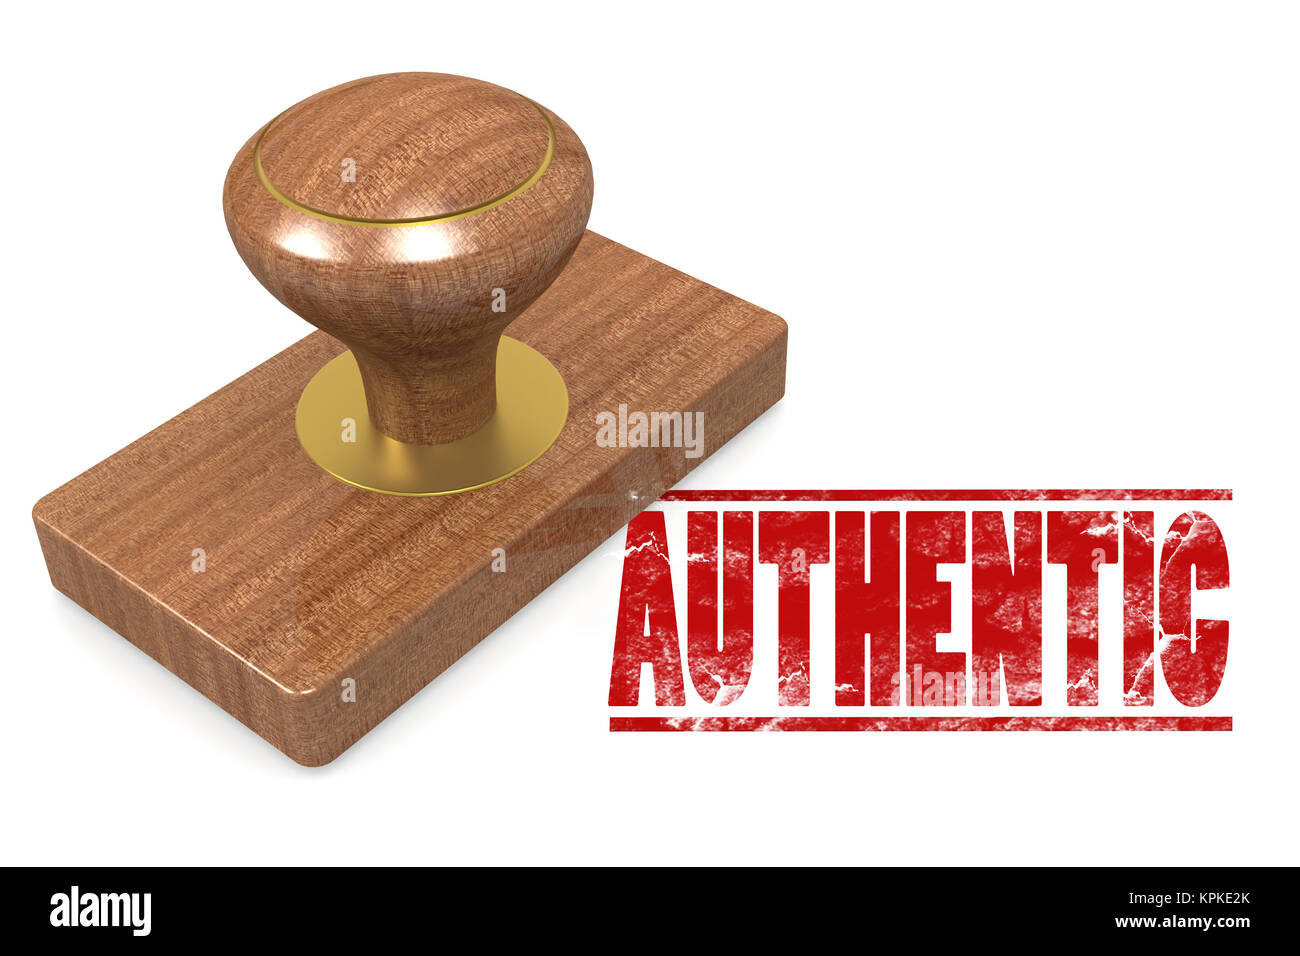 Authentic quallity wooded seal stamp - Stock Image